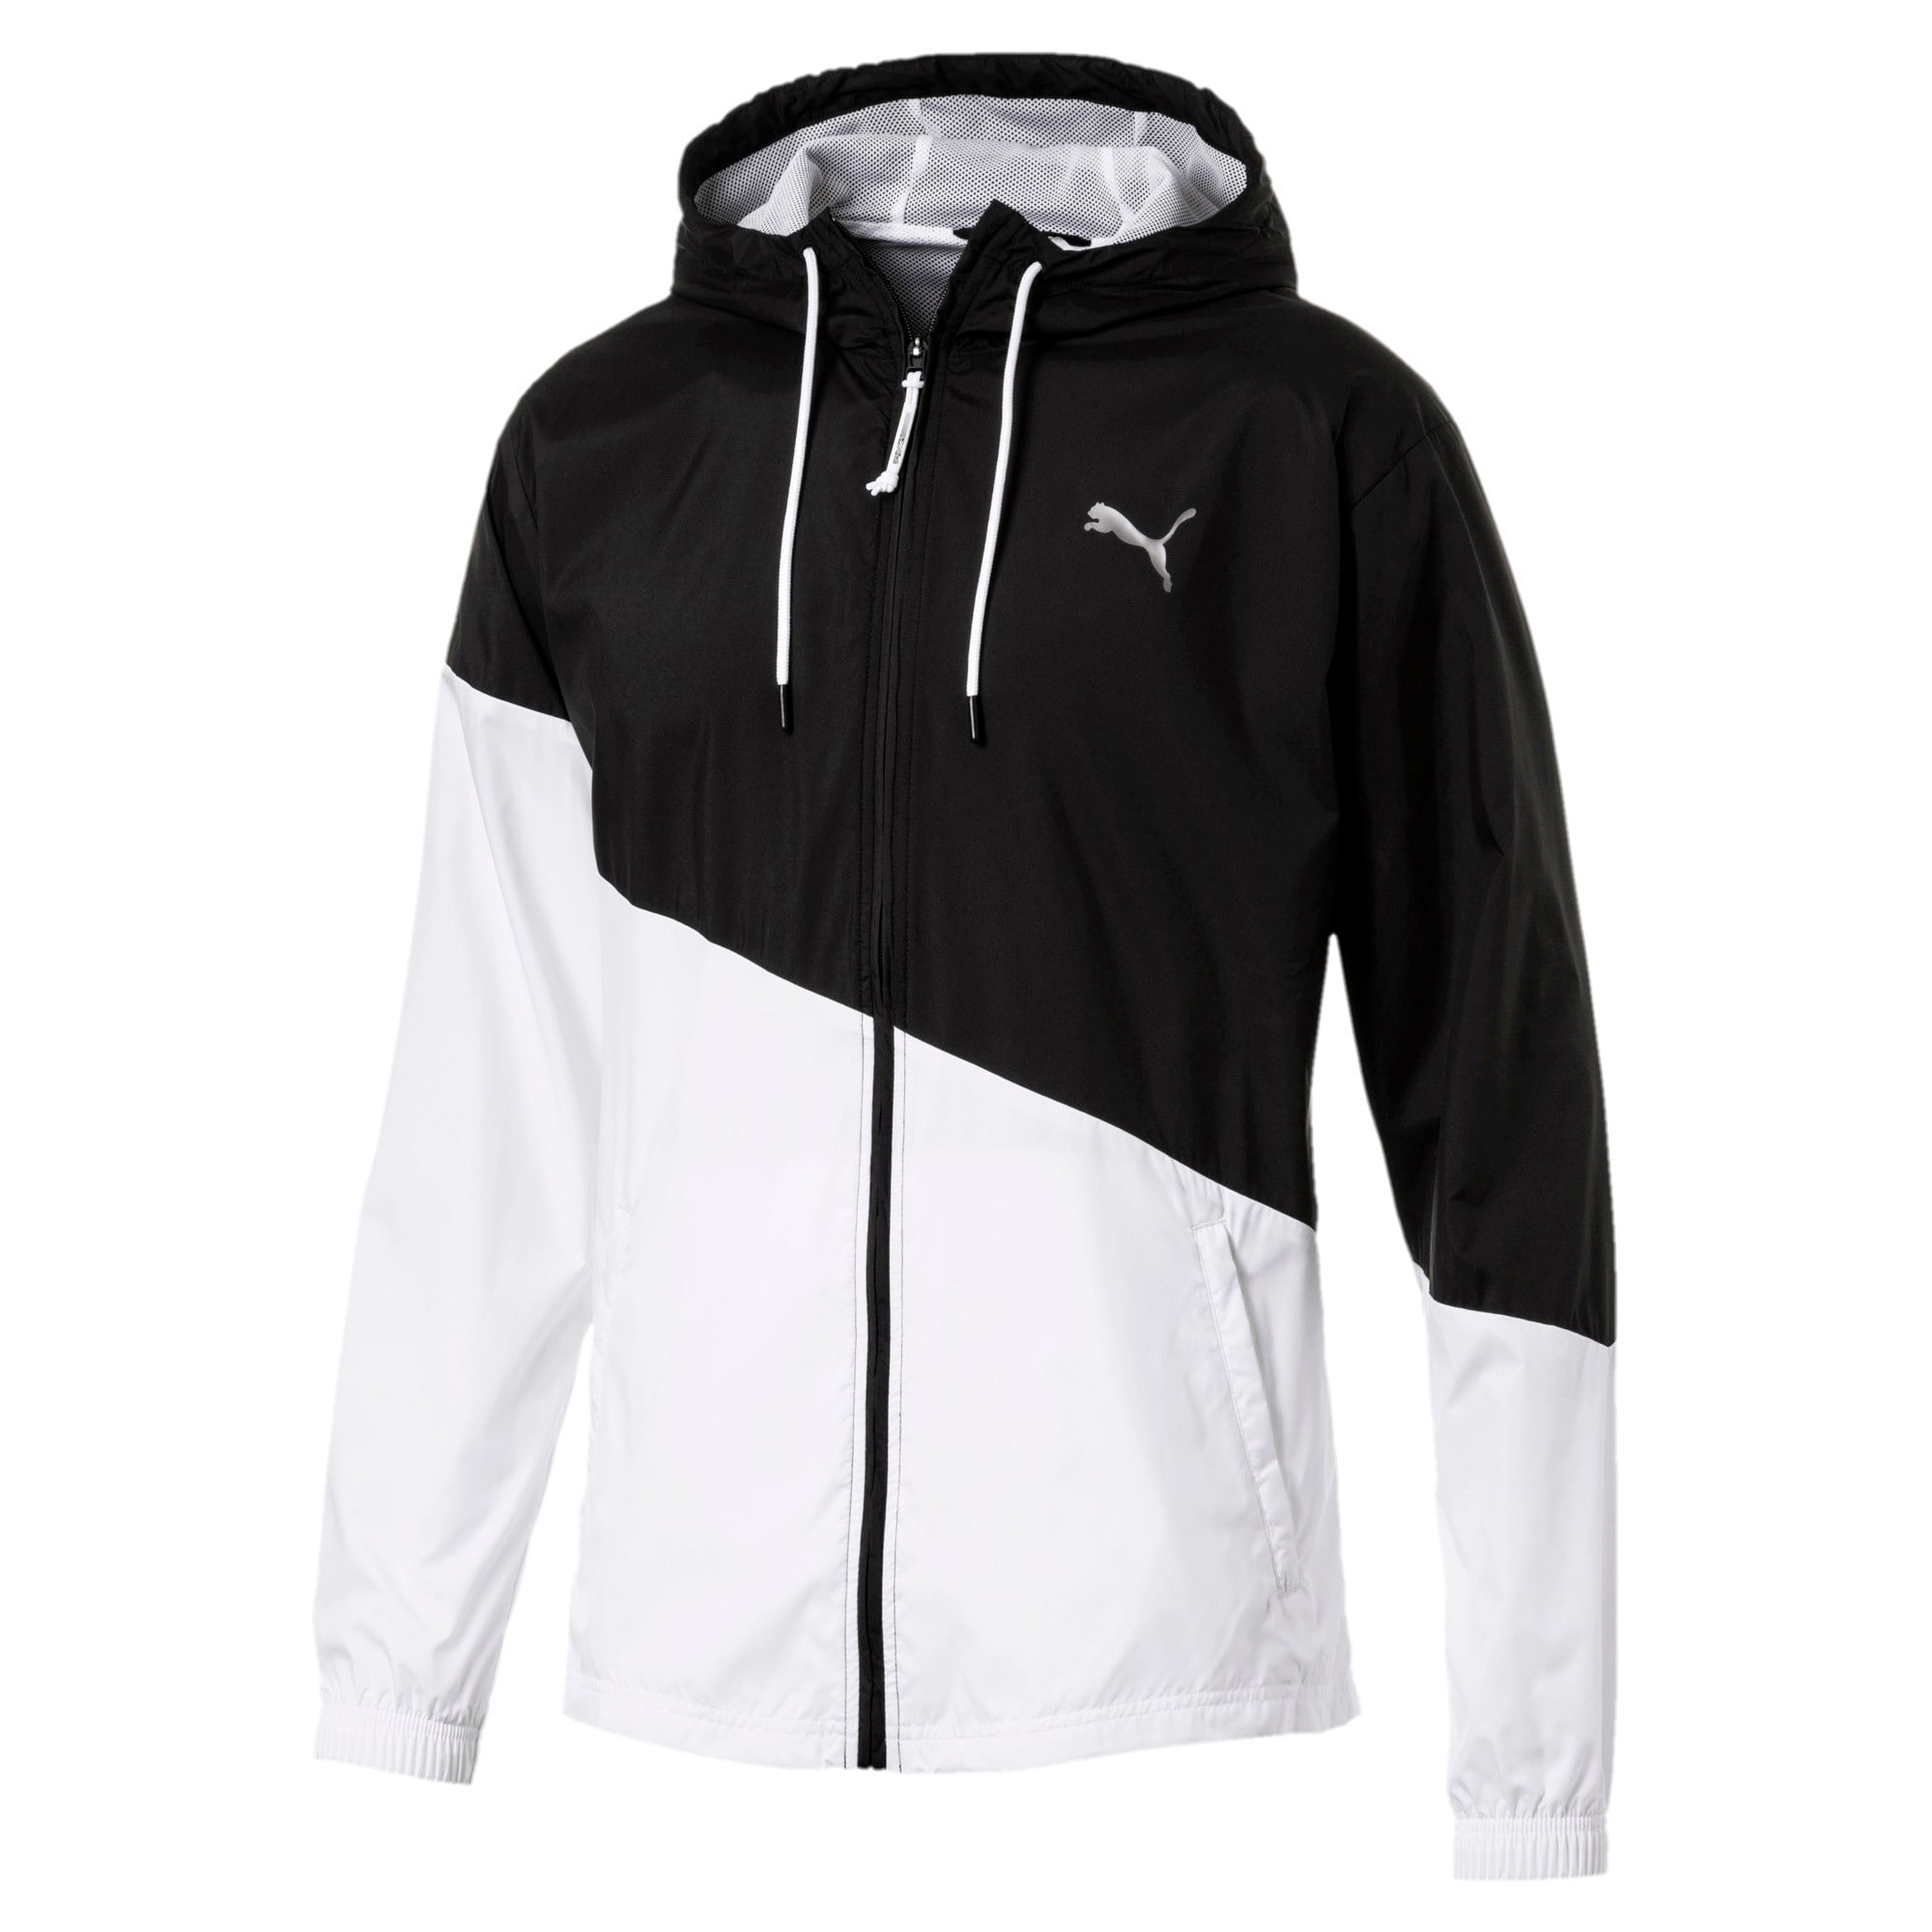 Thumbnail 5 of A.C.E. Men's Windbreaker, Puma Black-Puma White, medium